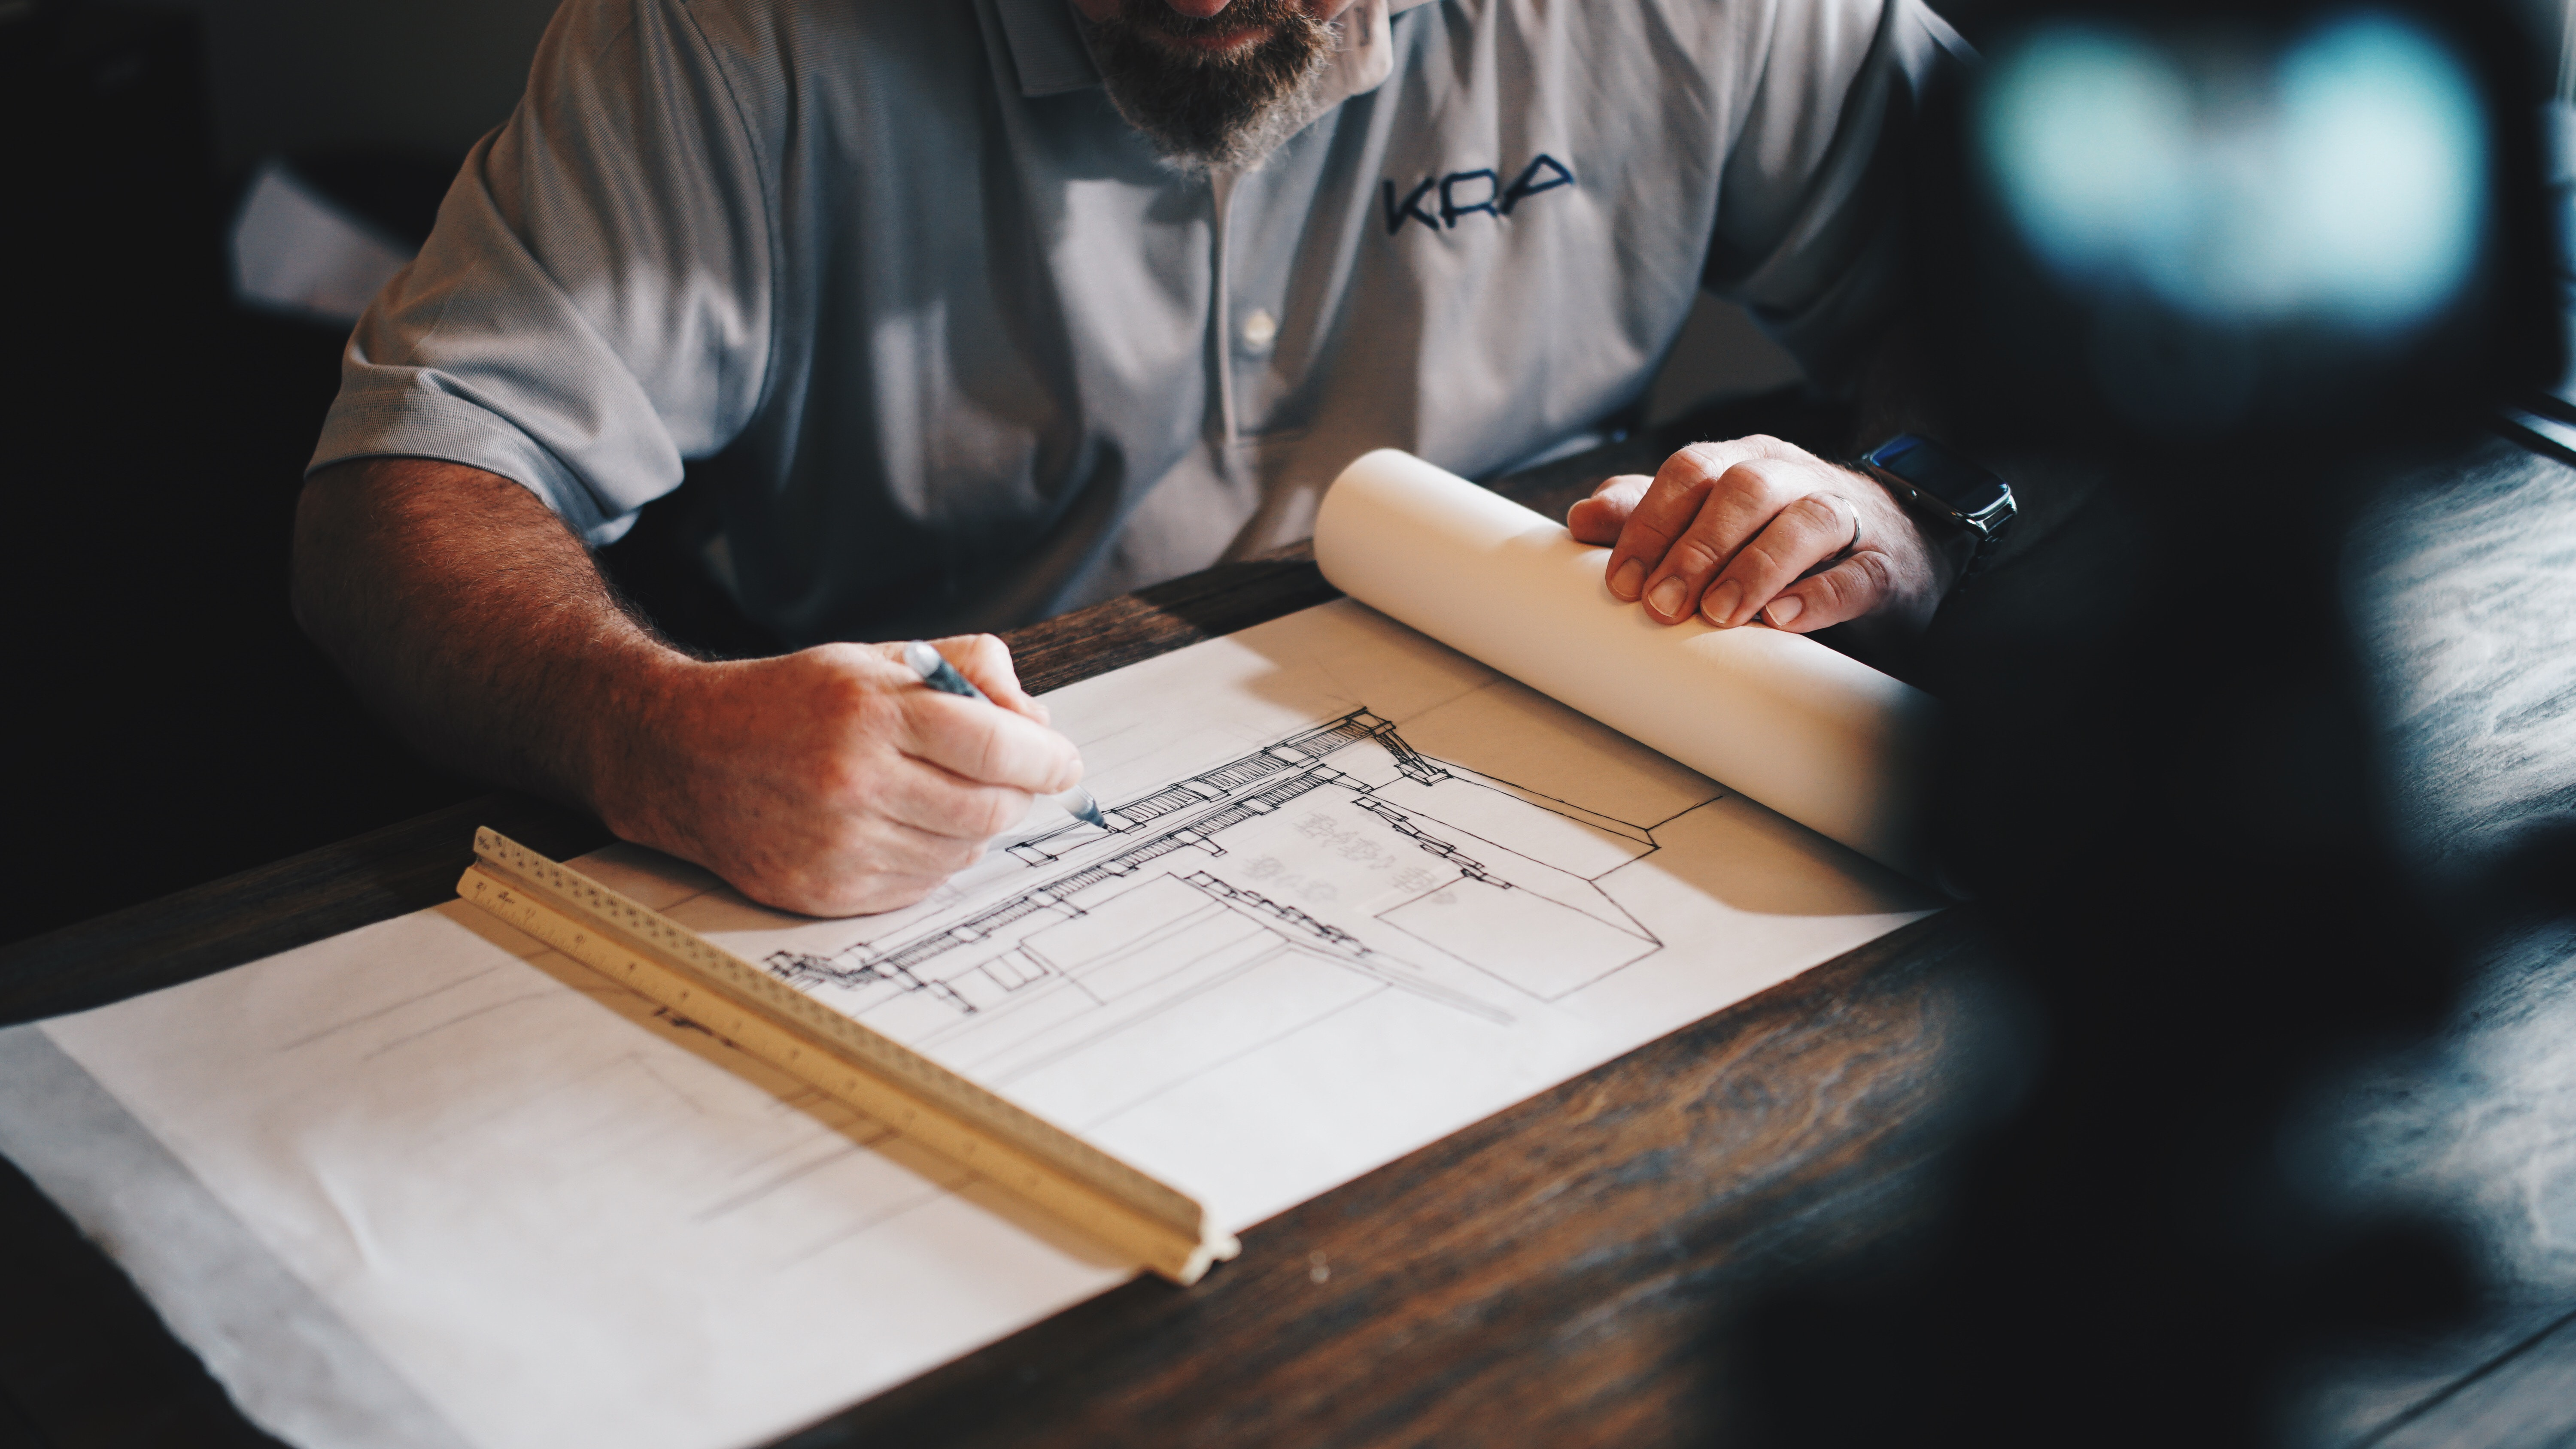 How Do I Deal With A General Contractor